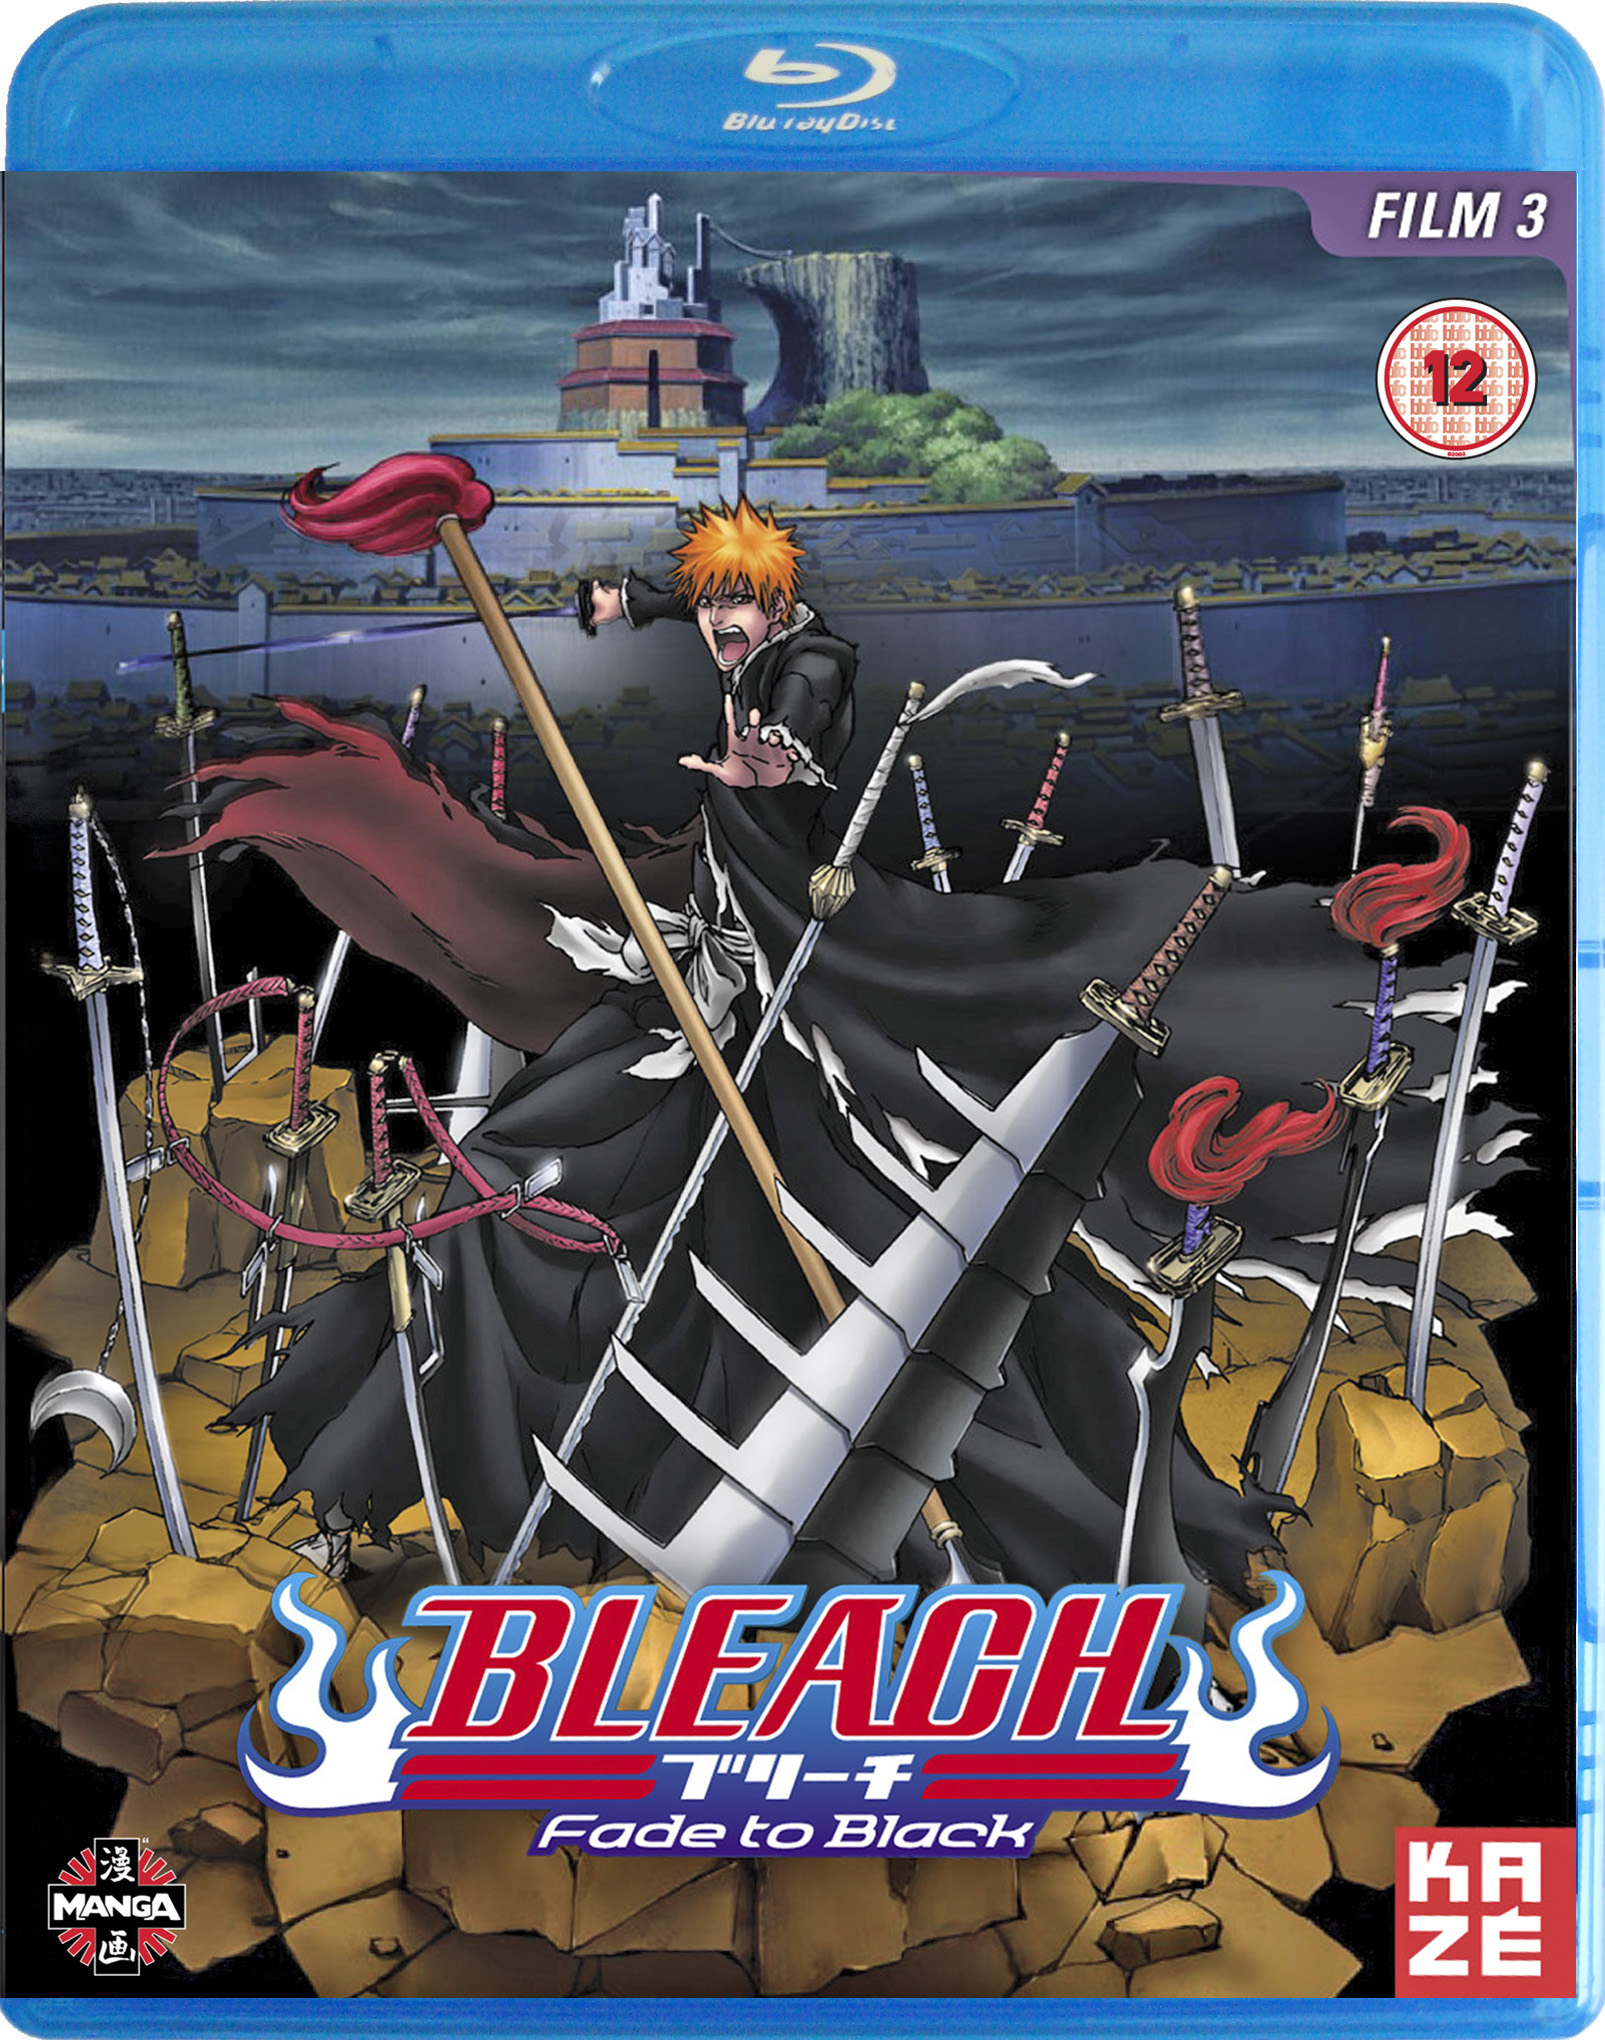 Bleach movie 3 fade to black + english subtitle full direct.